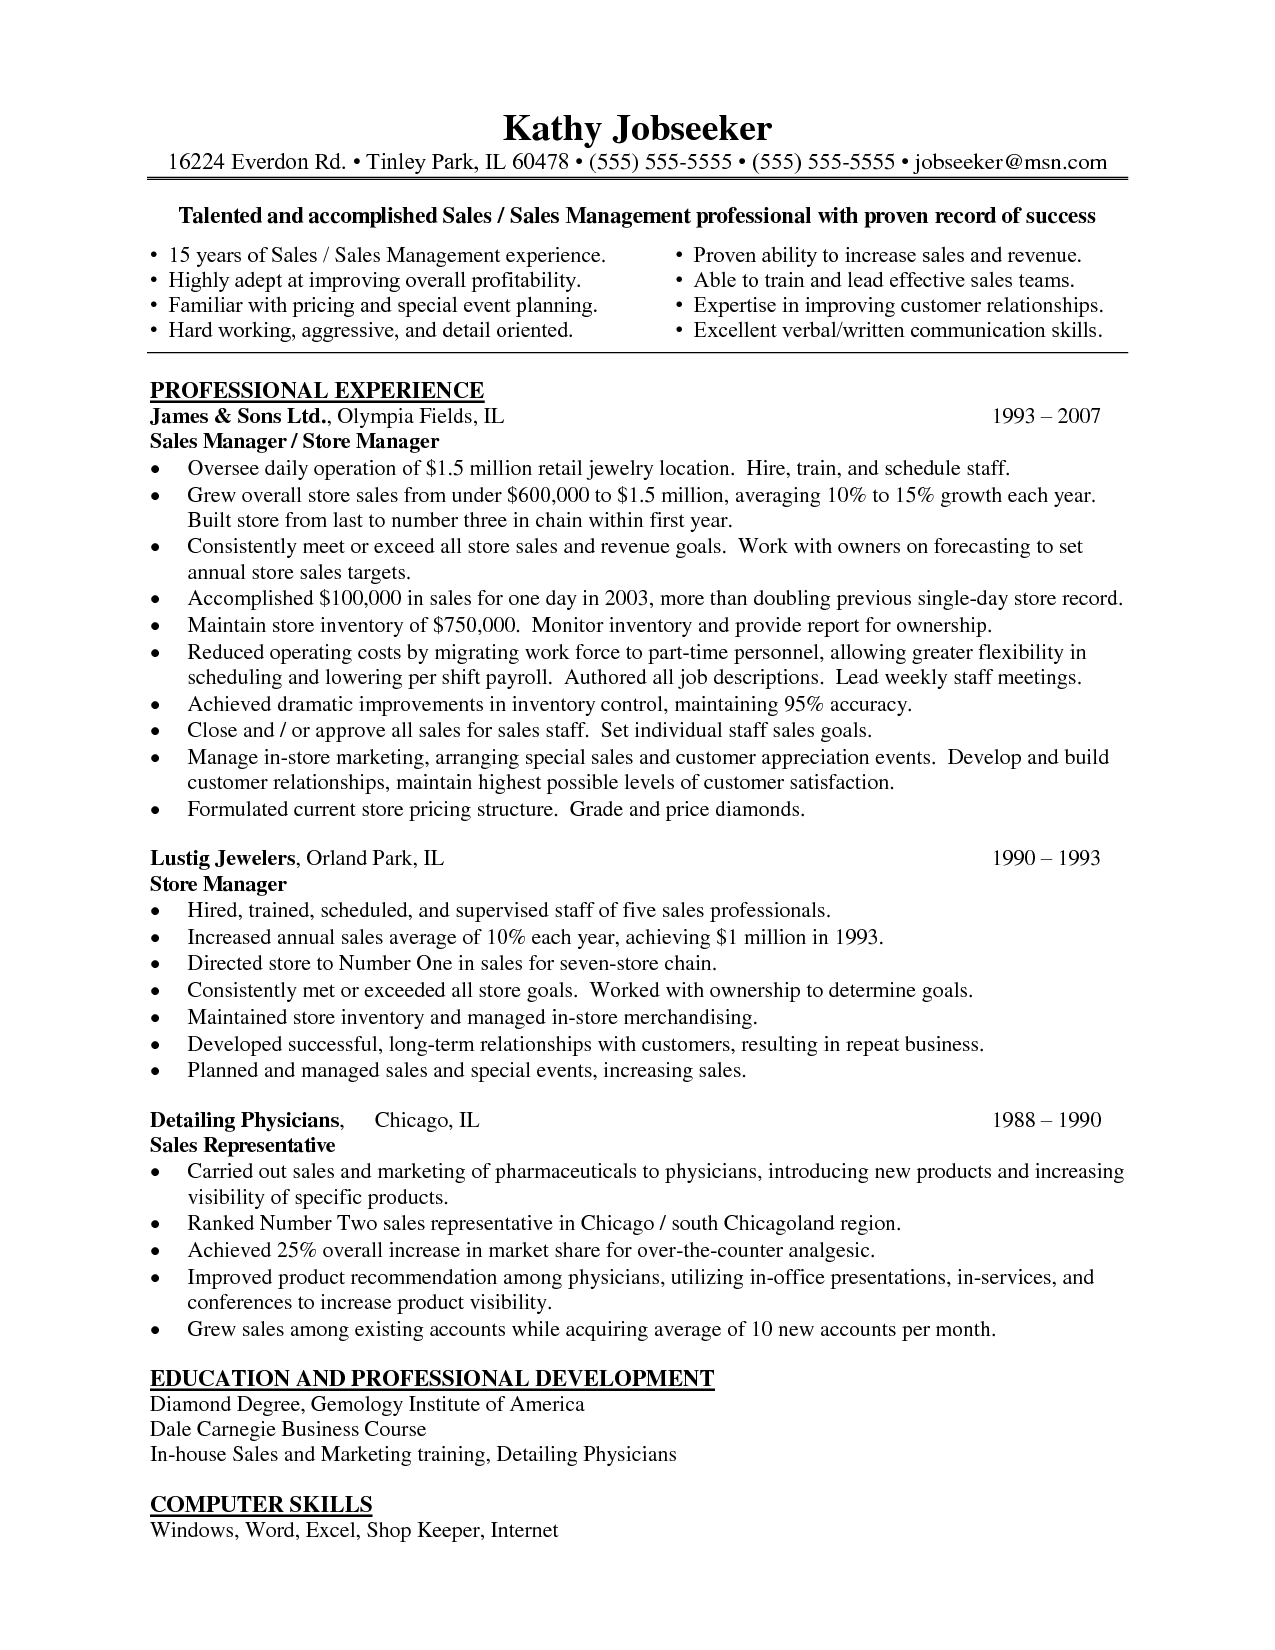 Resume Examples For Retail Store Manager | Sample Cover Letter For Retail  Management Job 4  It Sample Cover Letter